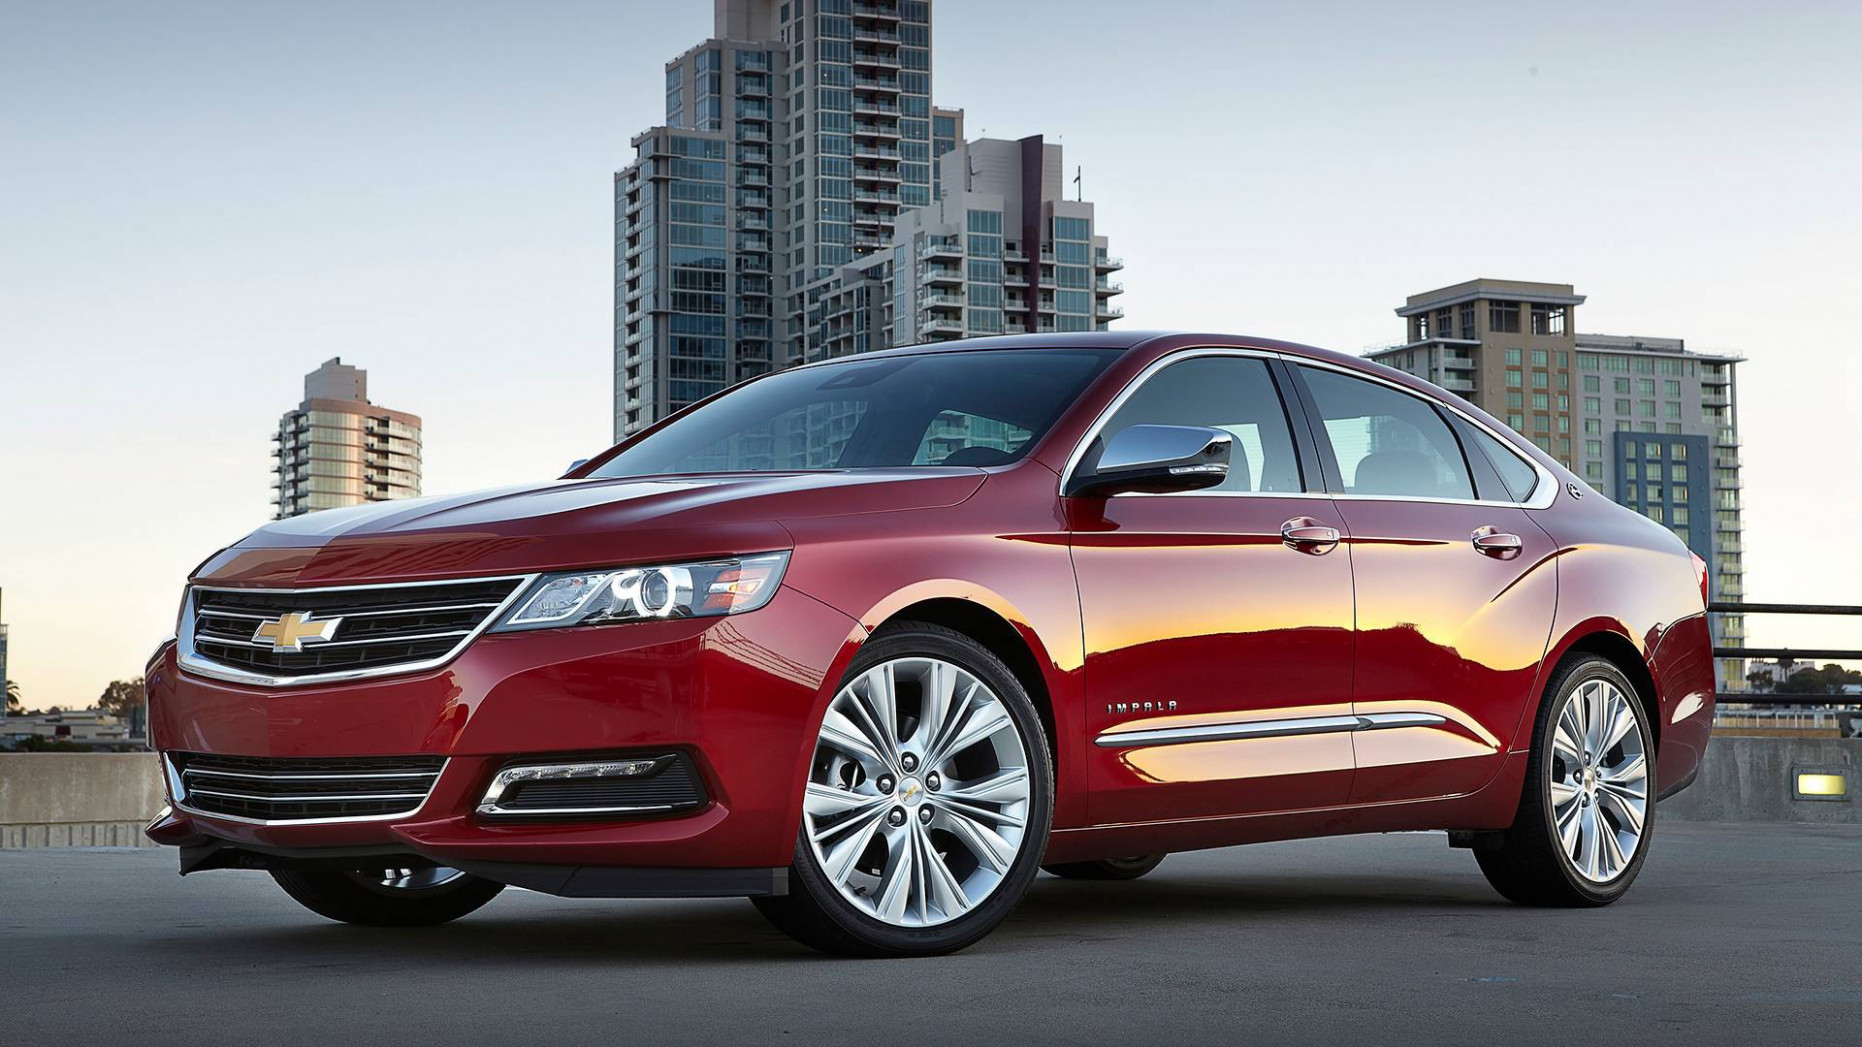 6 Chevy Impala Gets $6,6 Base Price Increase For Its Final Year - 2020 chevrolet impala premier for sale